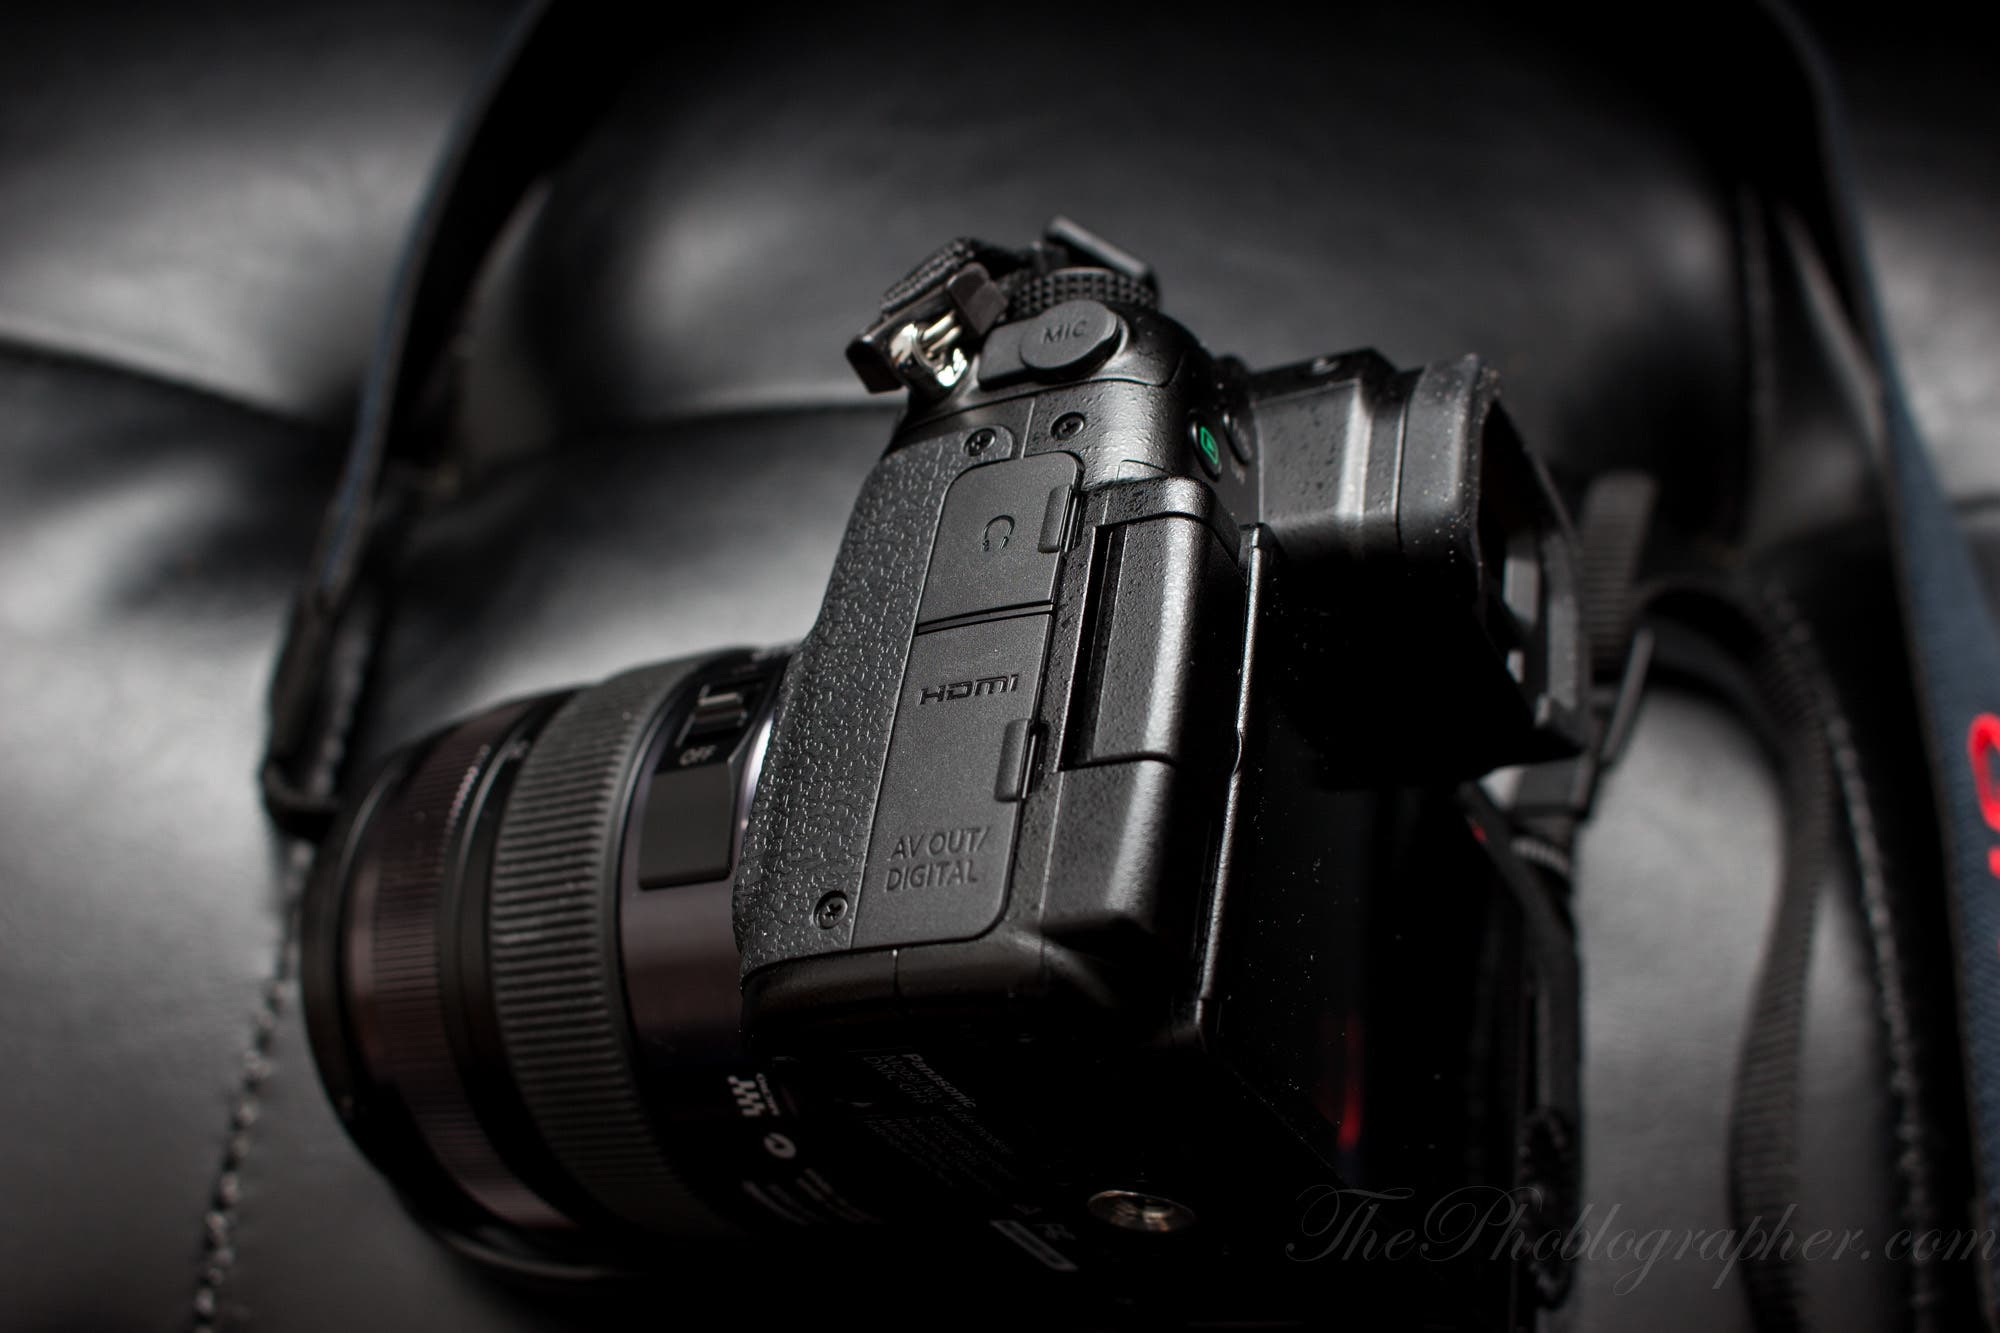 Review: Panasonic GH3 - The Phoblographer